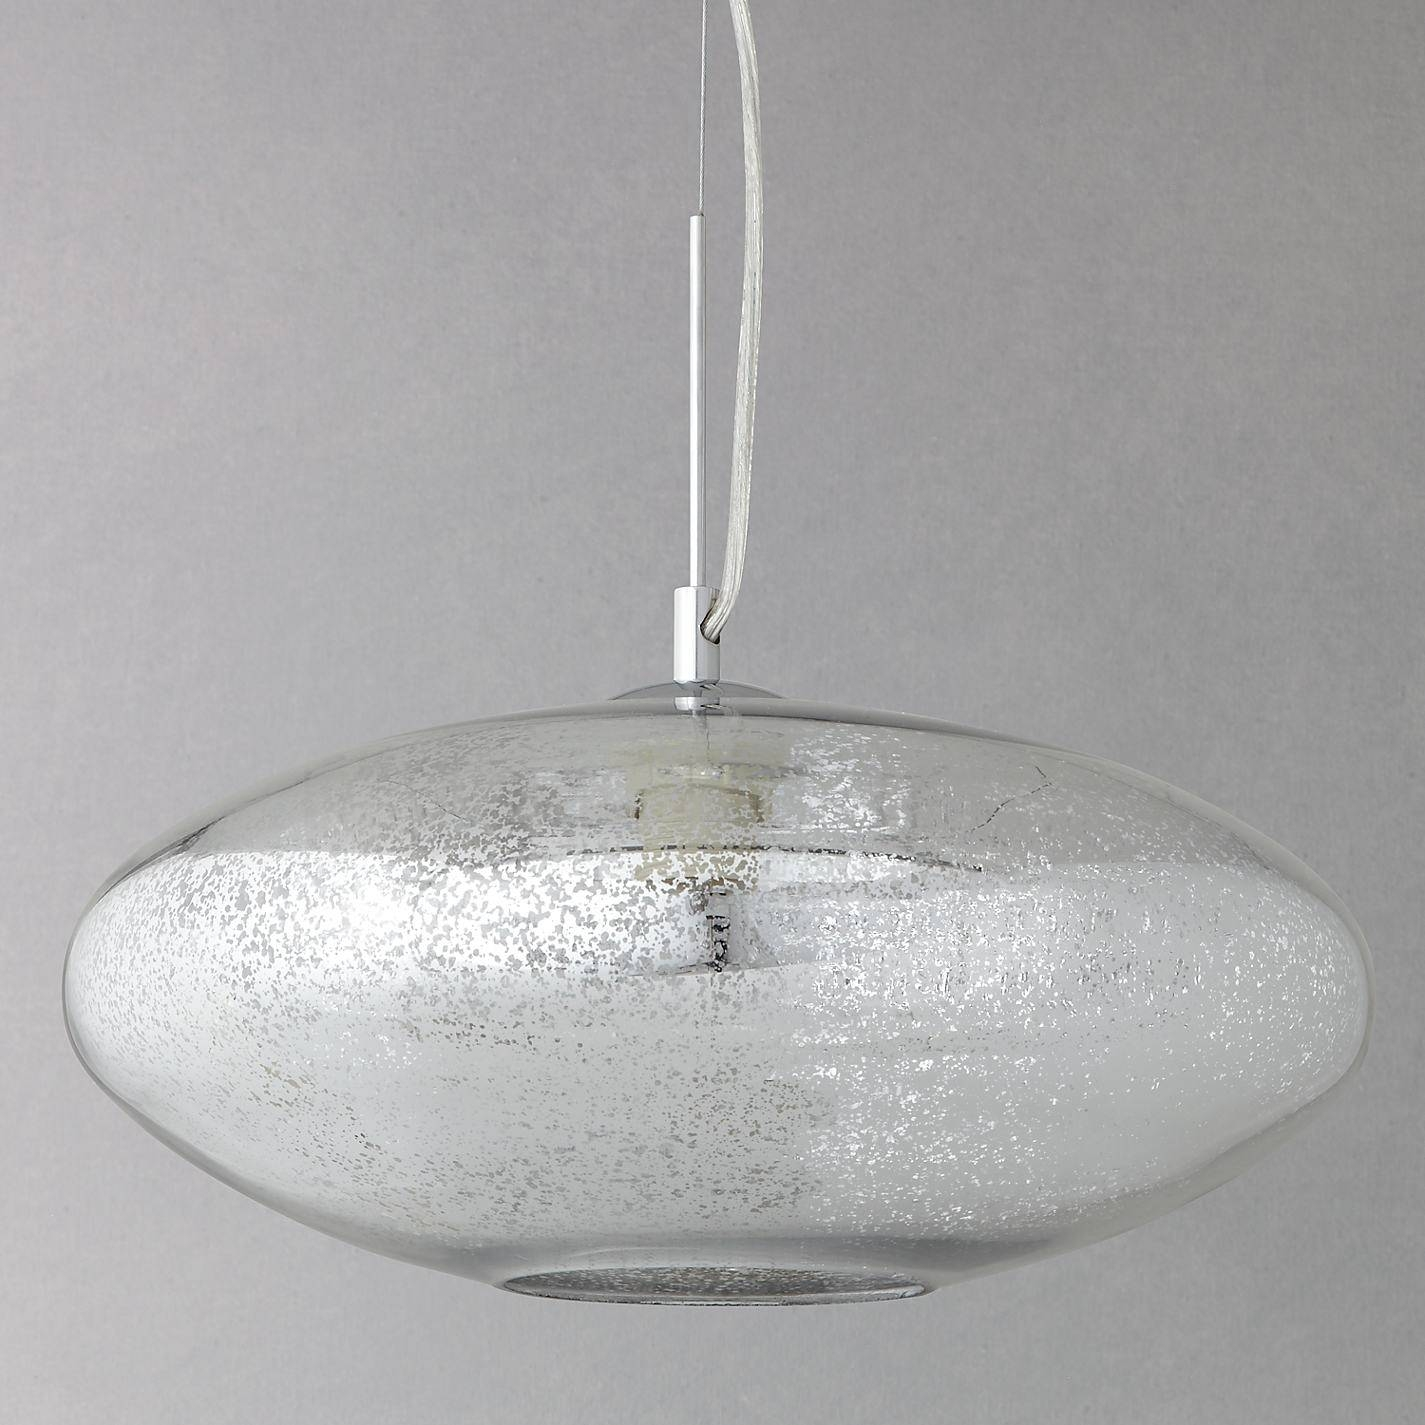 Lights: Antique Interior Lights Design Ideas With Mercury Glass inside John Lewis Pendant Light Shades (Image 11 of 15)